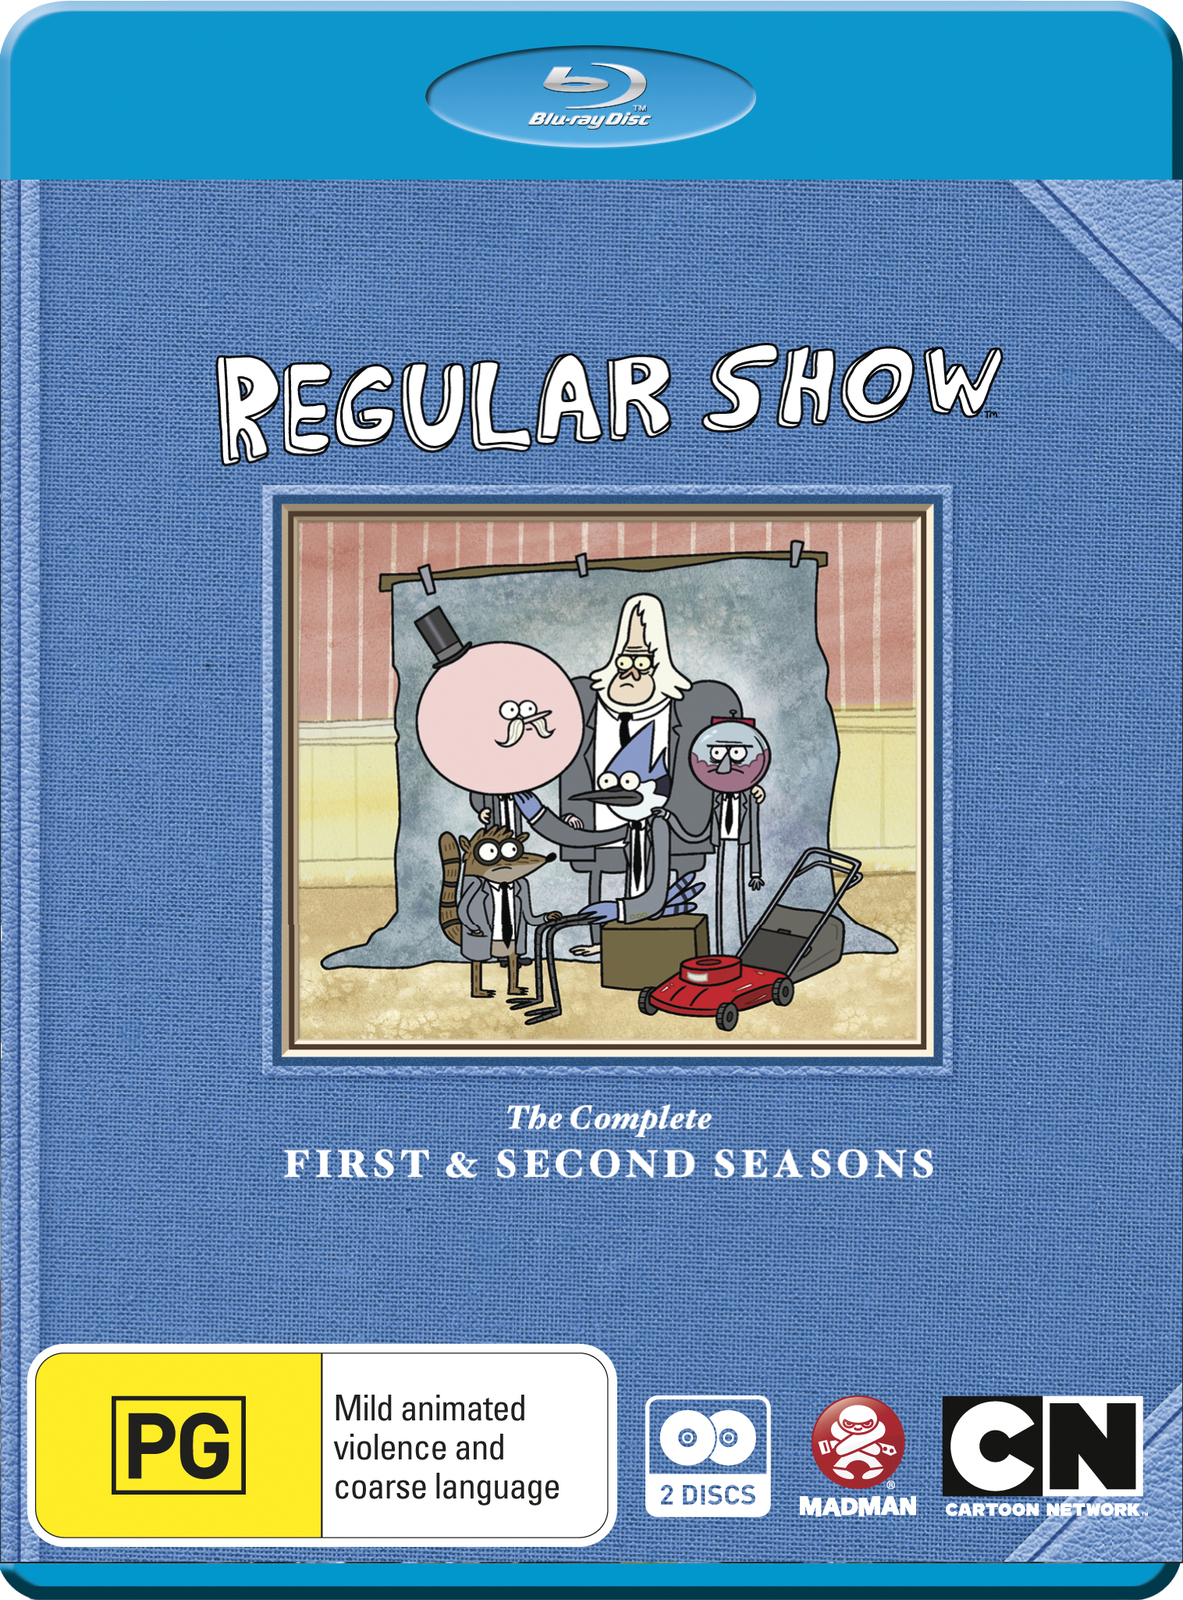 Regular Show - The Complete 1st & 2nd Seasons on Blu-ray image